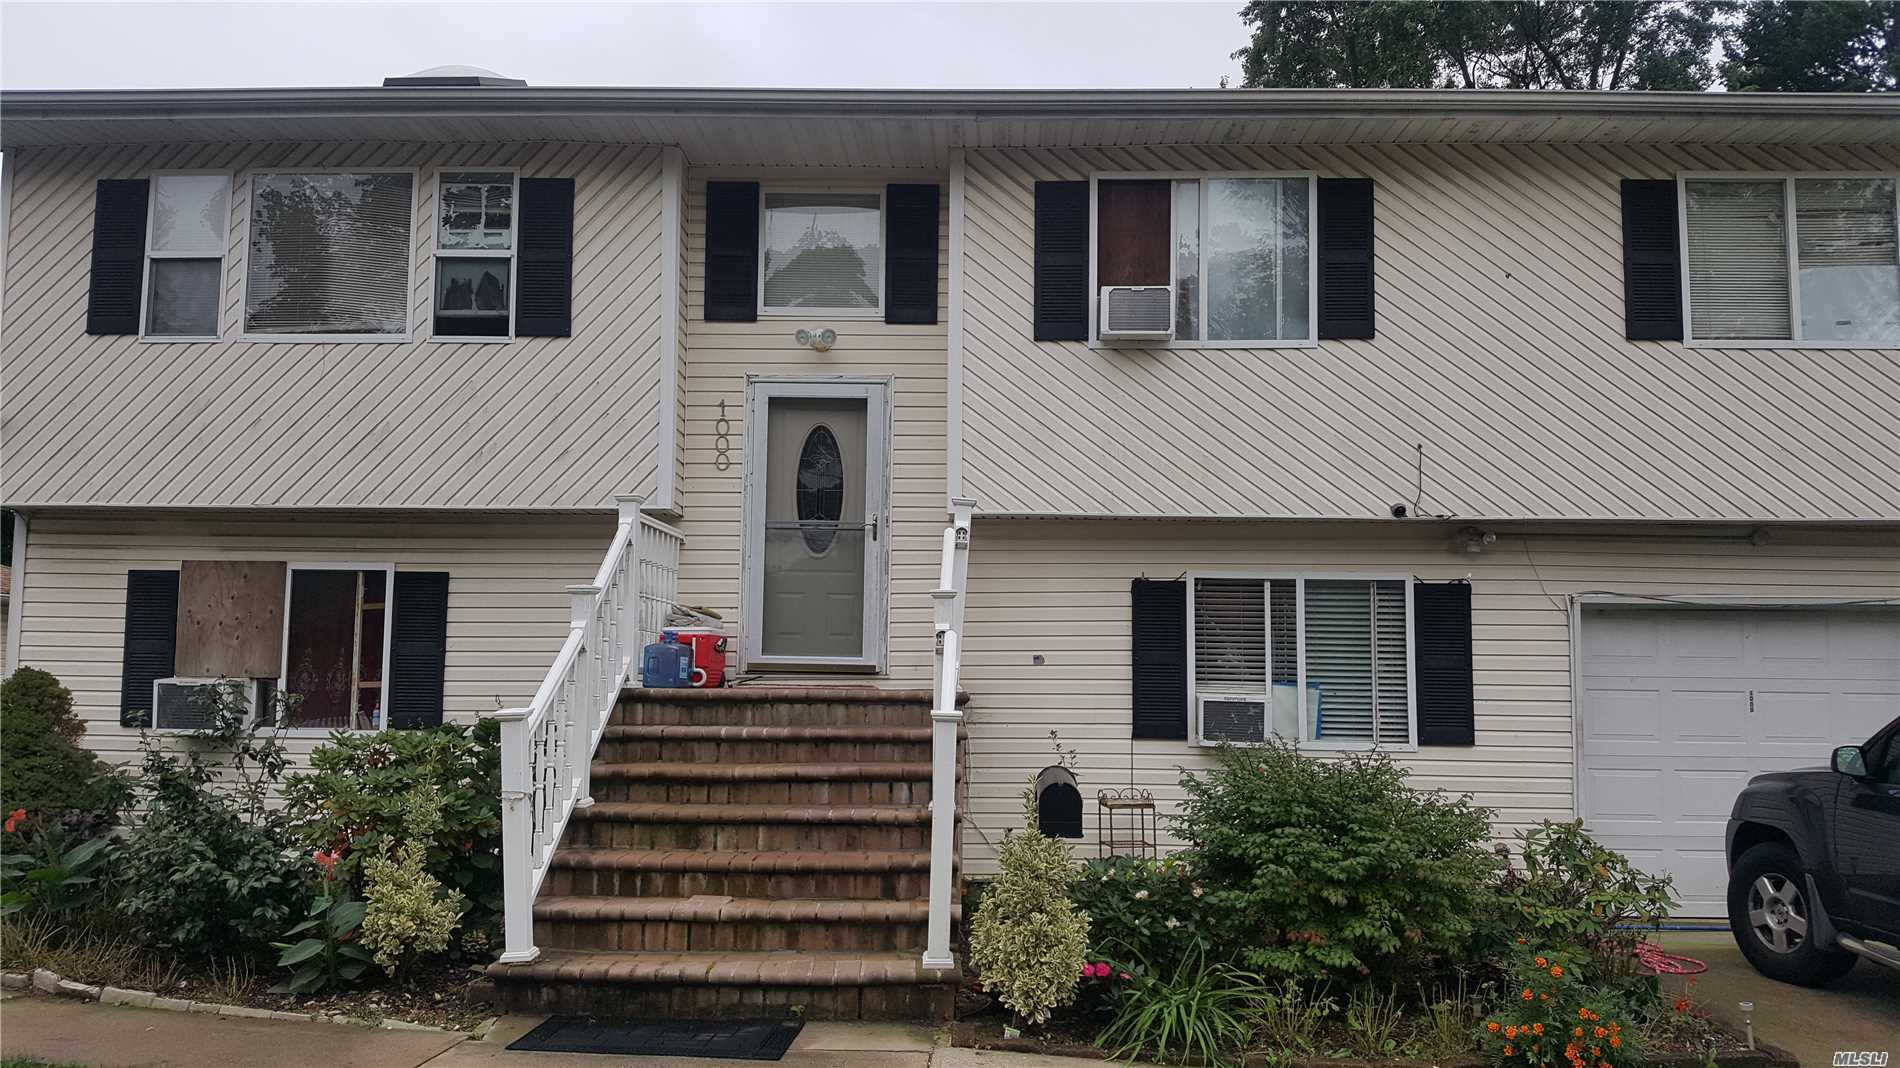 Bank Approved short sale, price is firm.